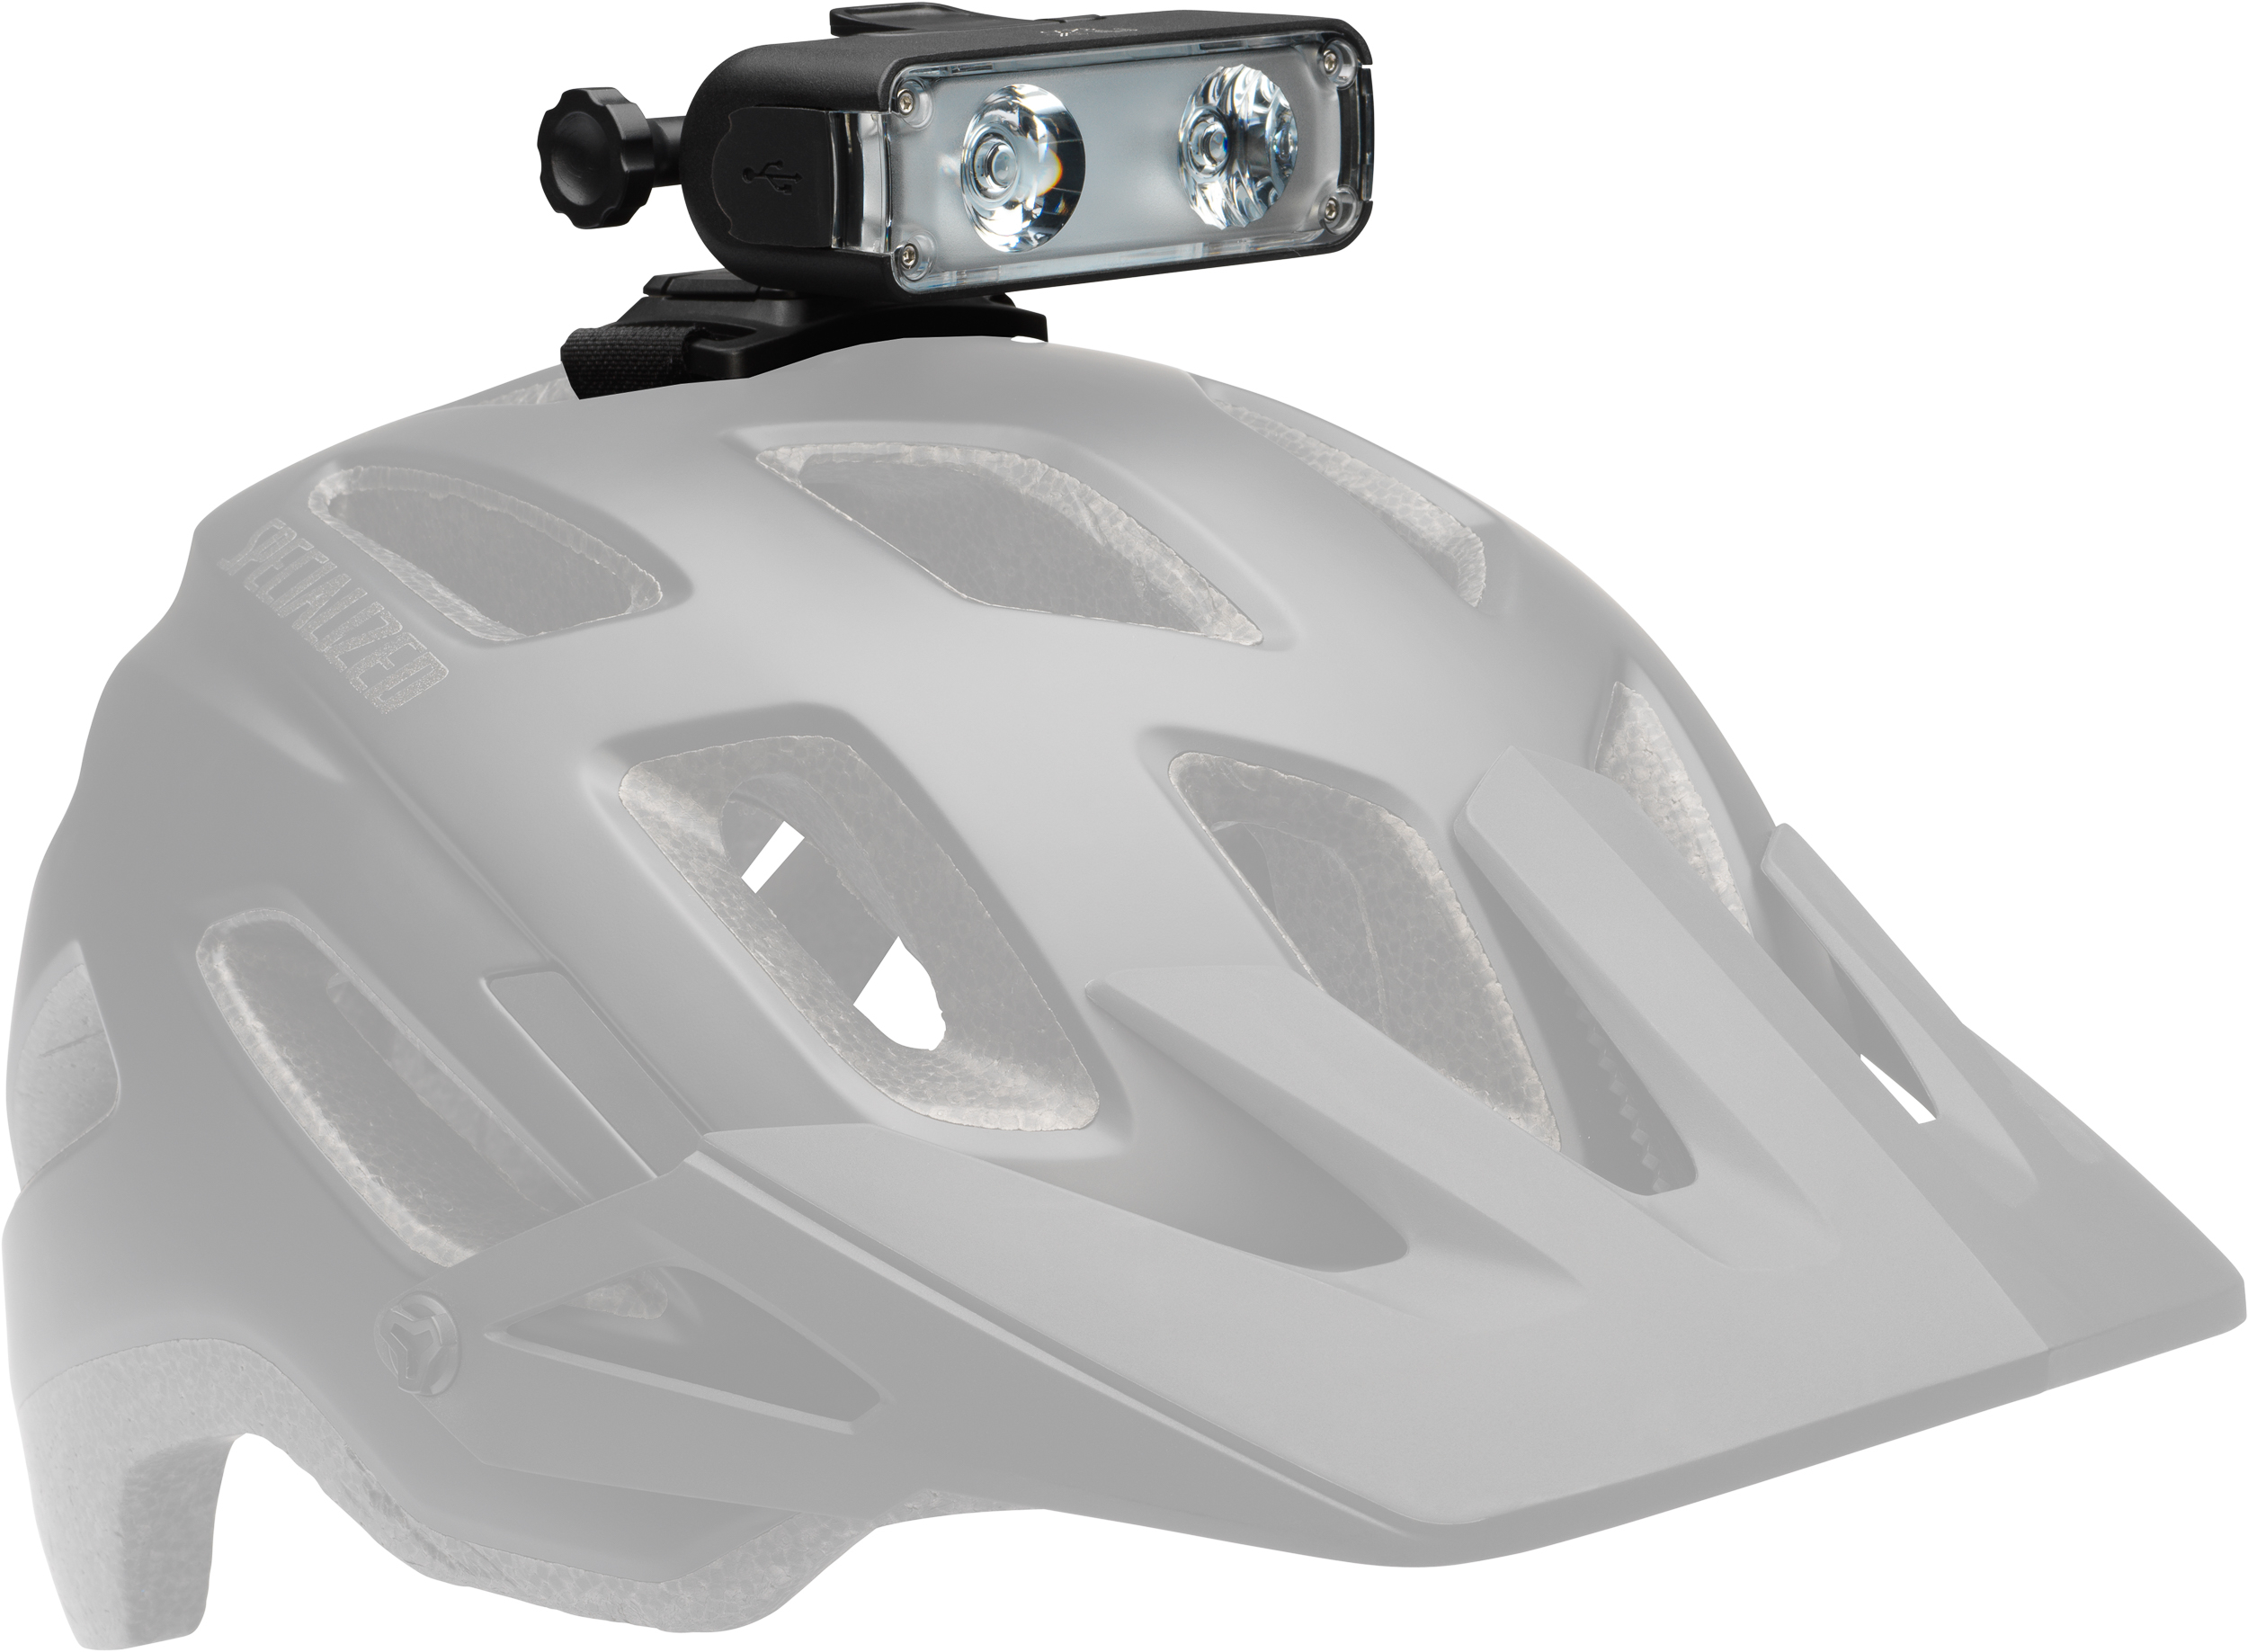 Specialized Flux 900/1200 Headlight Helmet Mount